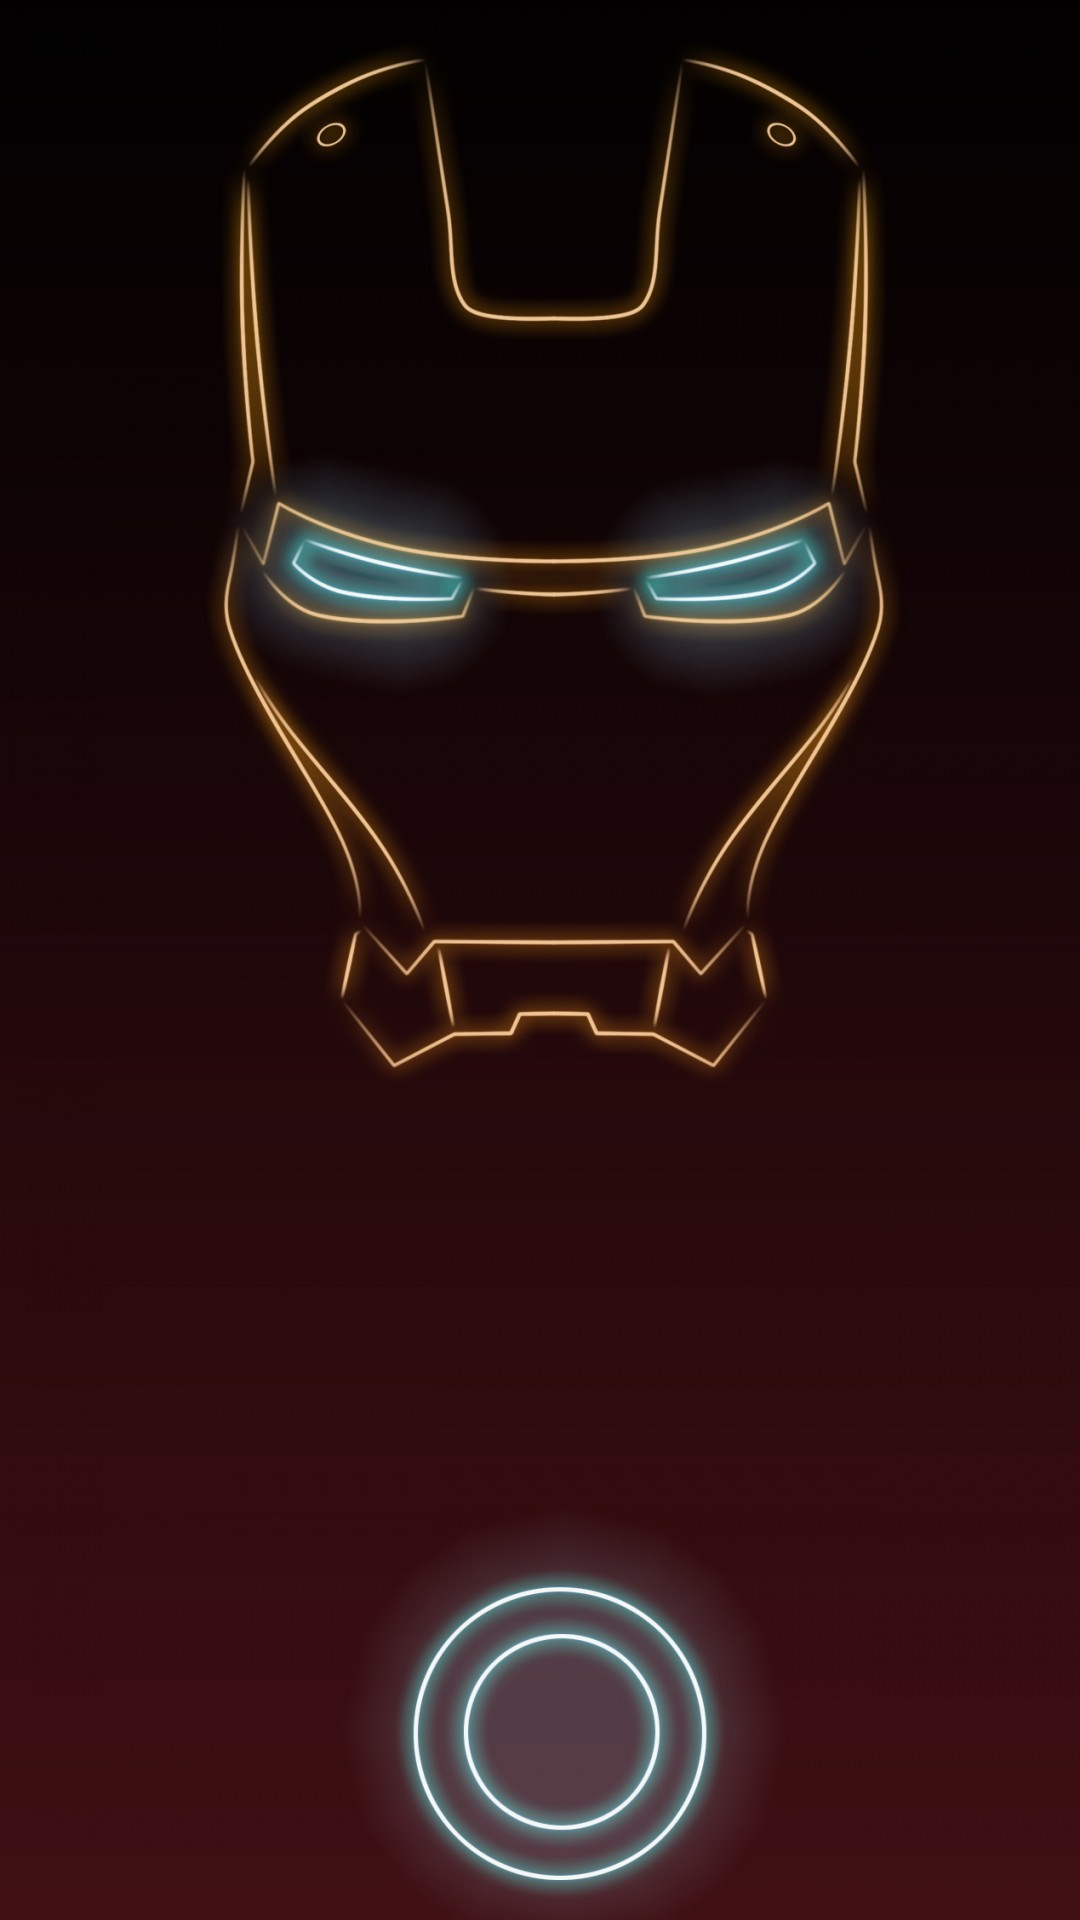 1920x1080 Generally Those Who Look For Iron Man Wallpaper Are Also Fan Of